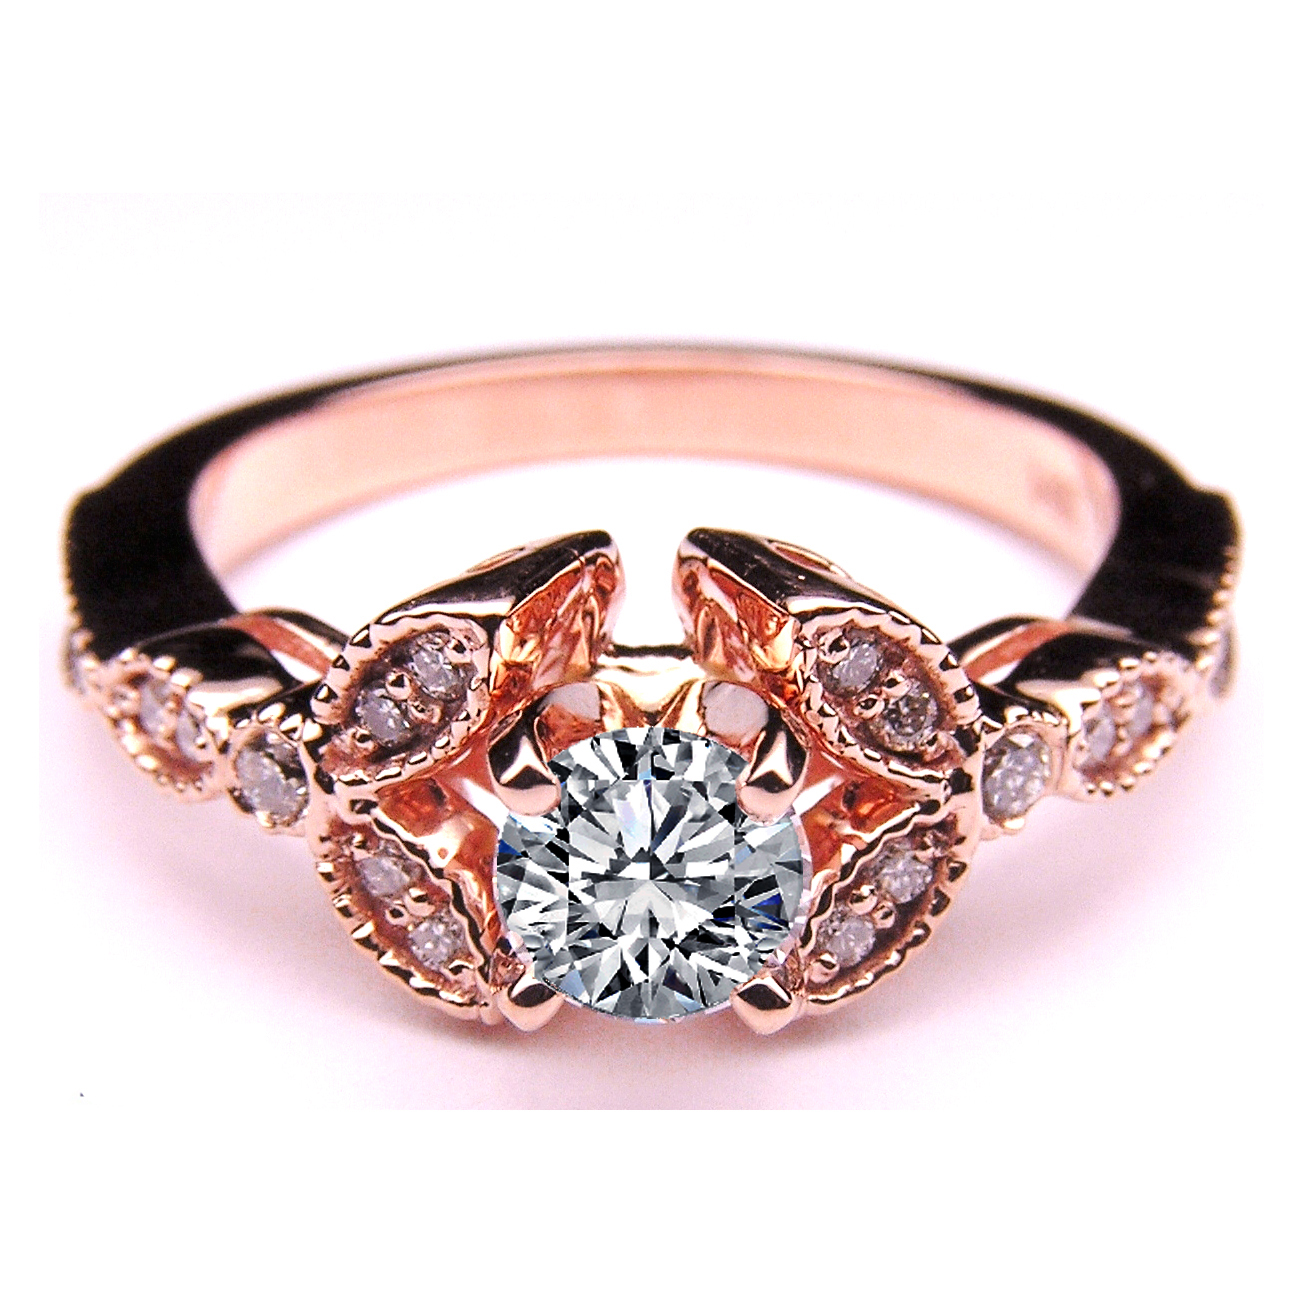 Floral Vintage Diamond Engagement Ring 0.2 tcw. In 14K Rose Pink Gold